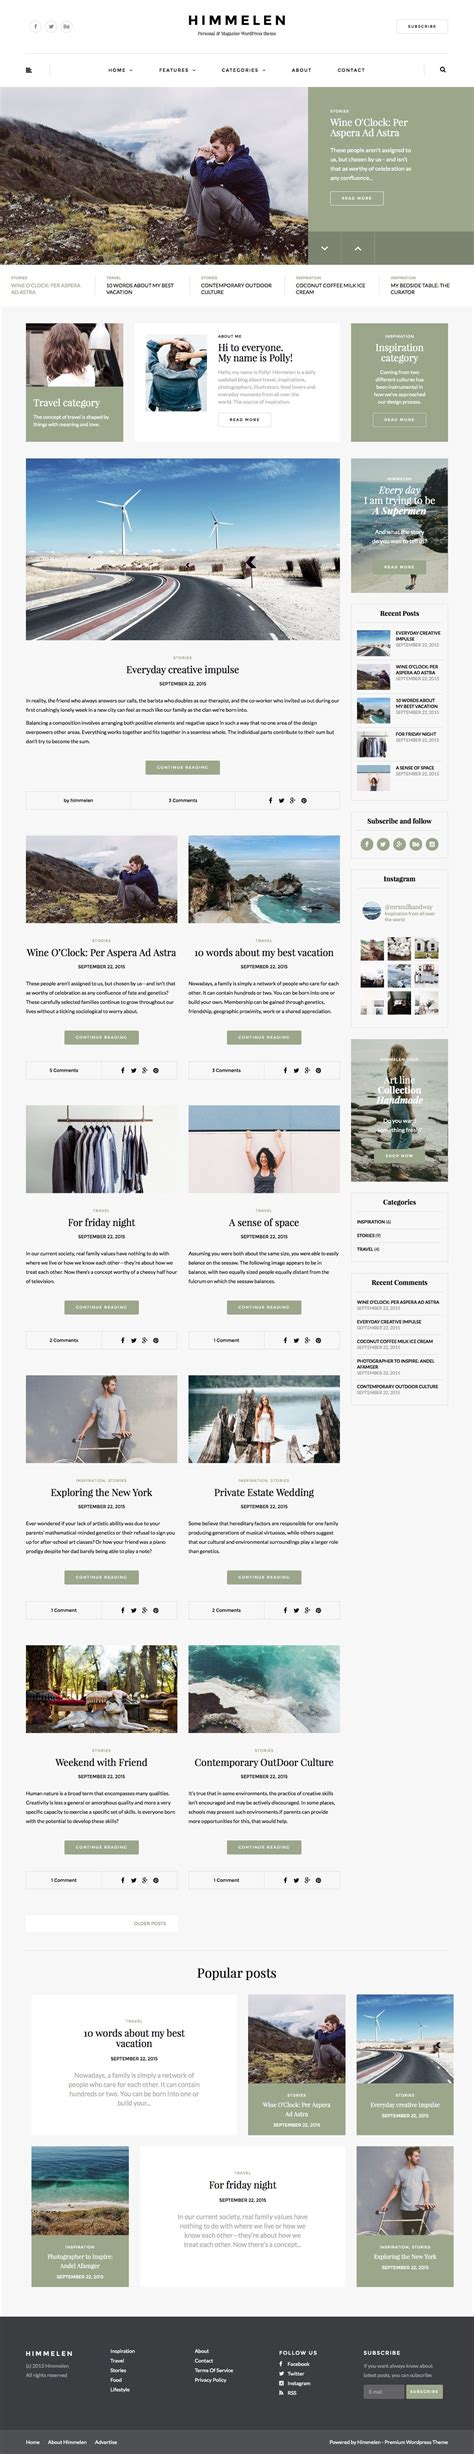 blog theme in themeforest himmelen personal wordpress blog theme by dedalx